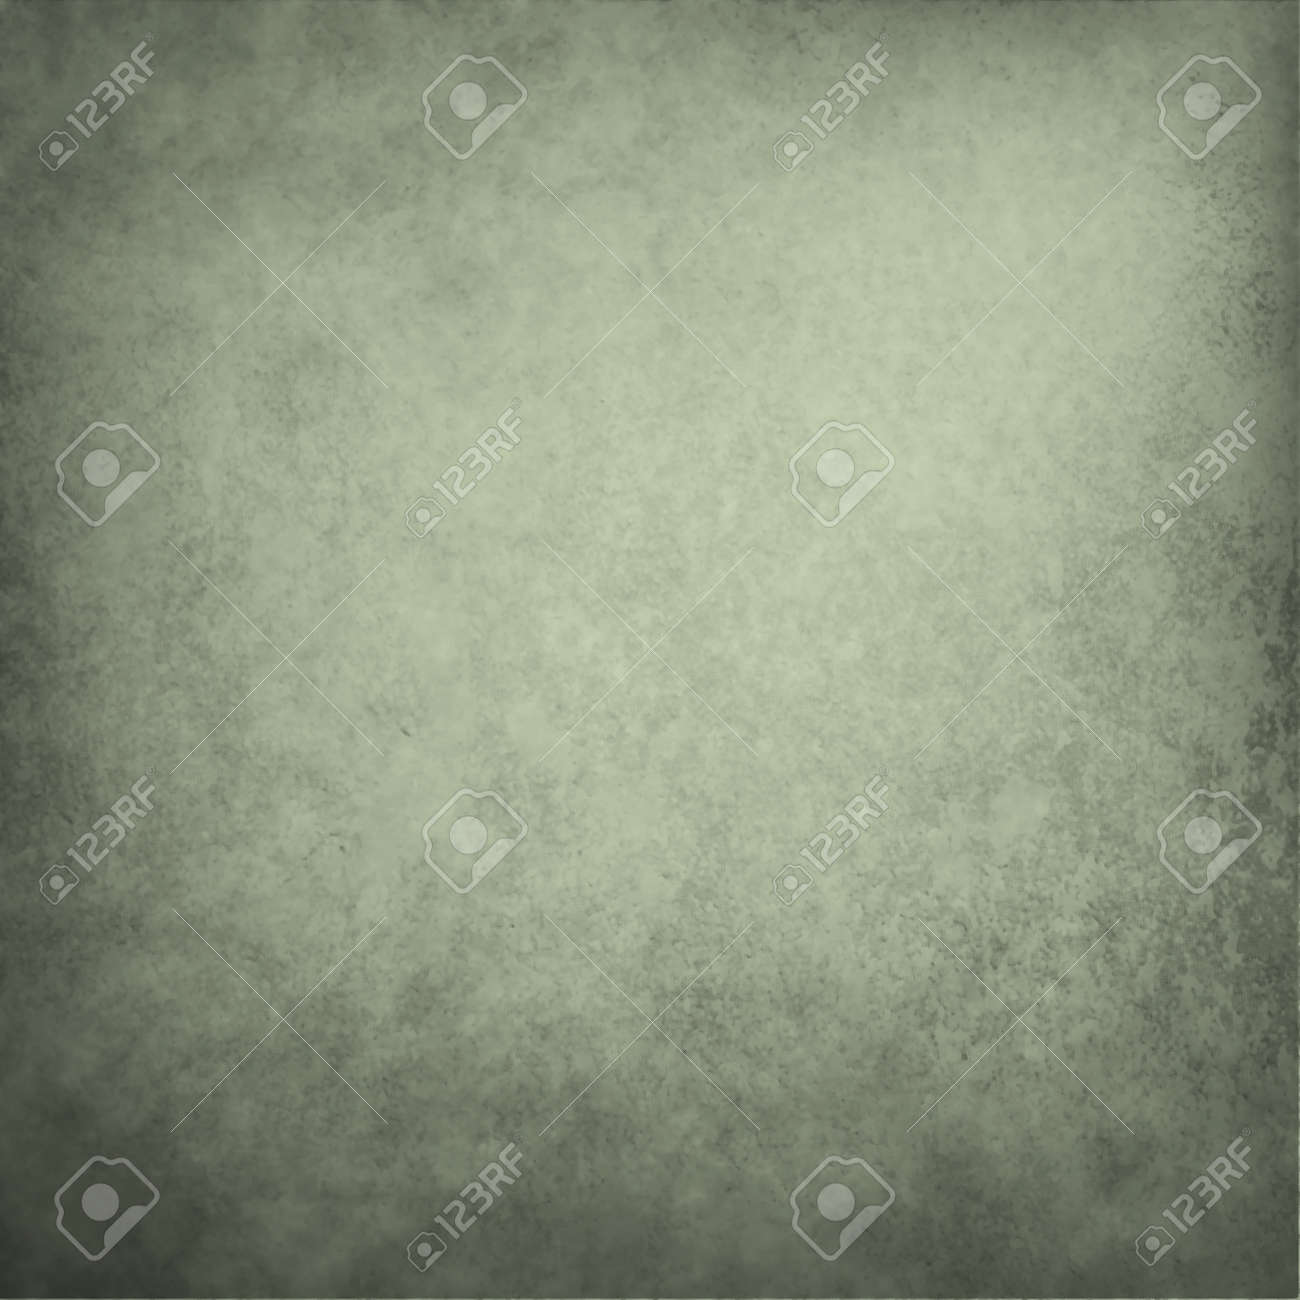 grunge background texture, light green background with abstract highlight corner vintage background Stock Photo - 18685619